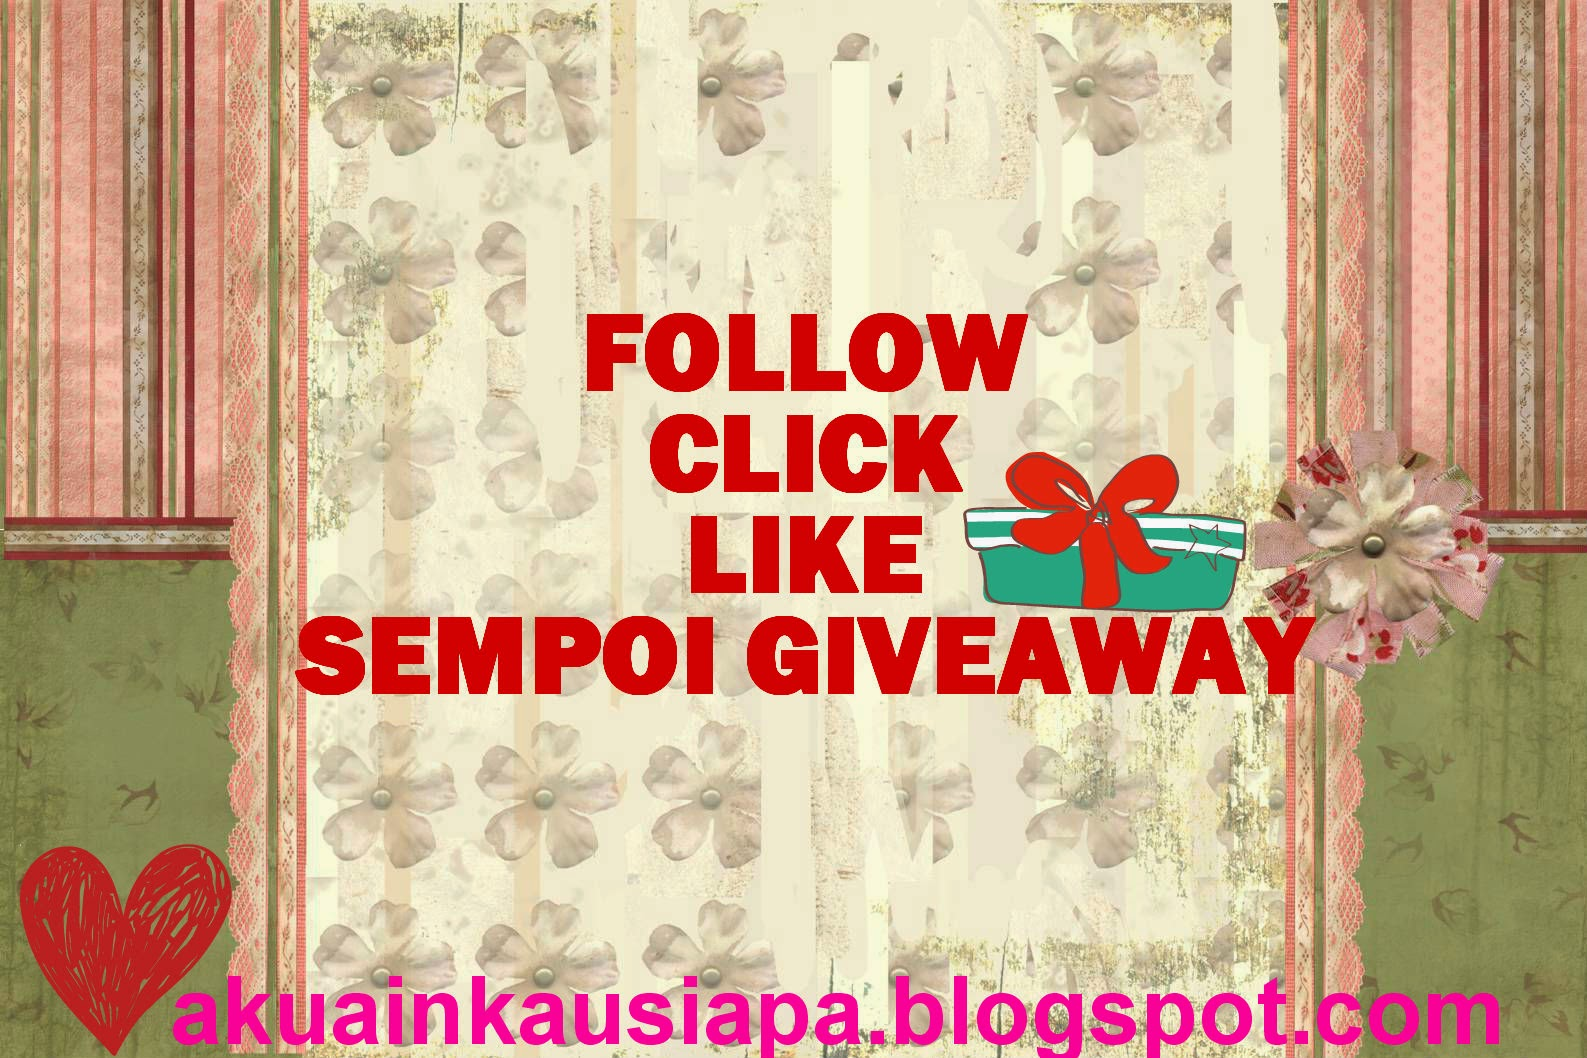 Follow Click Like Sempoi Giveaway